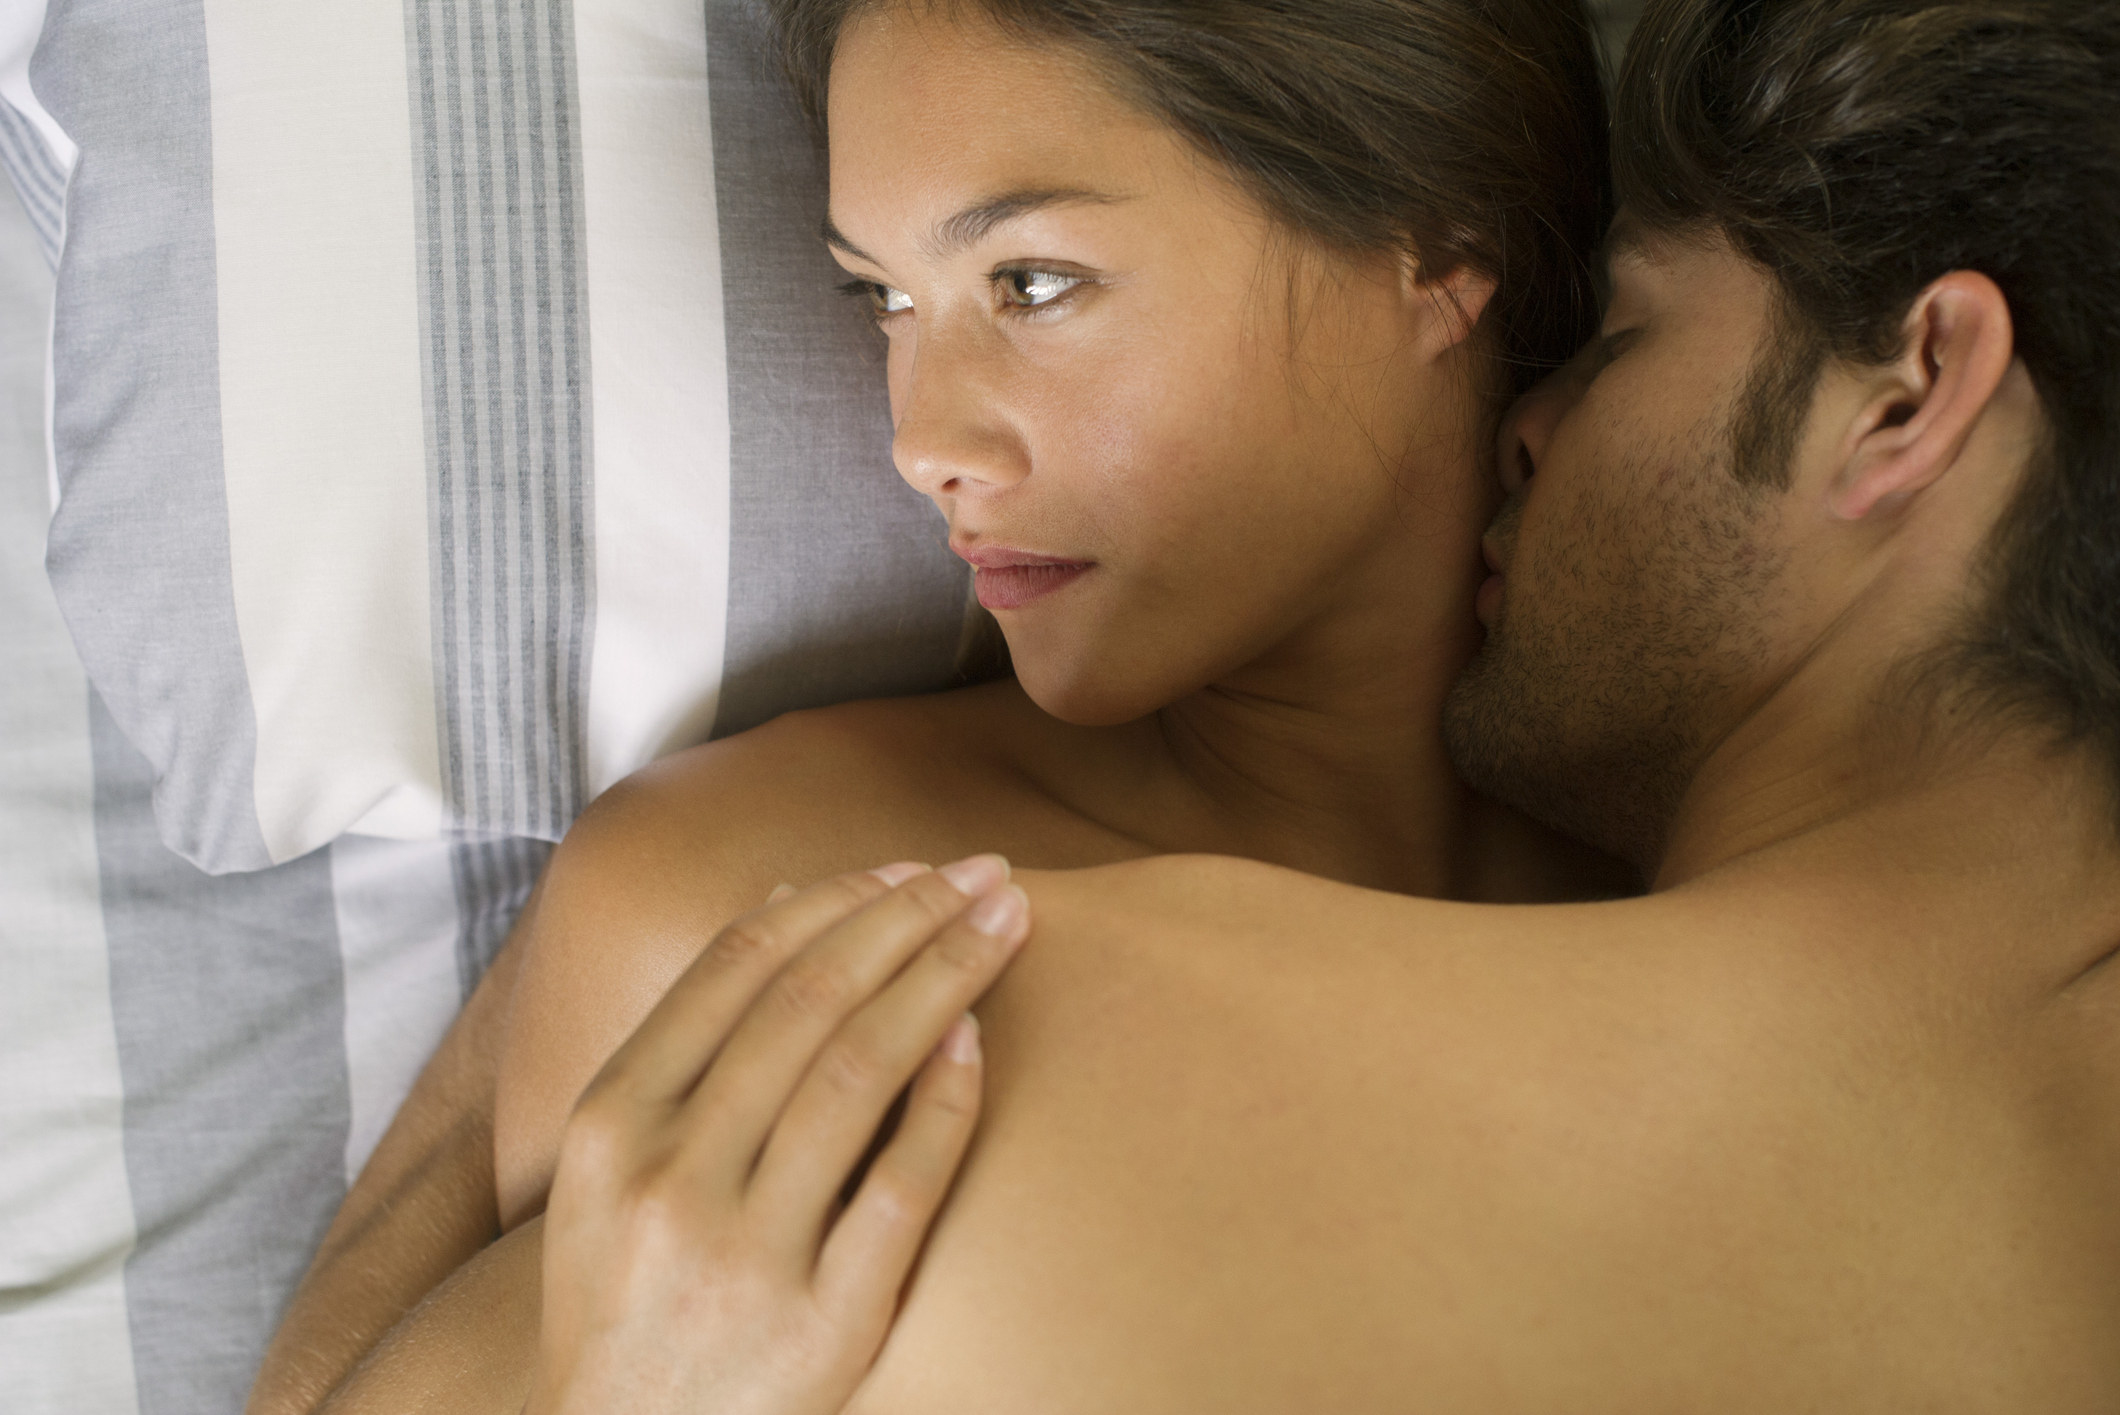 A woman in bed with a sexual partner kissing her neck